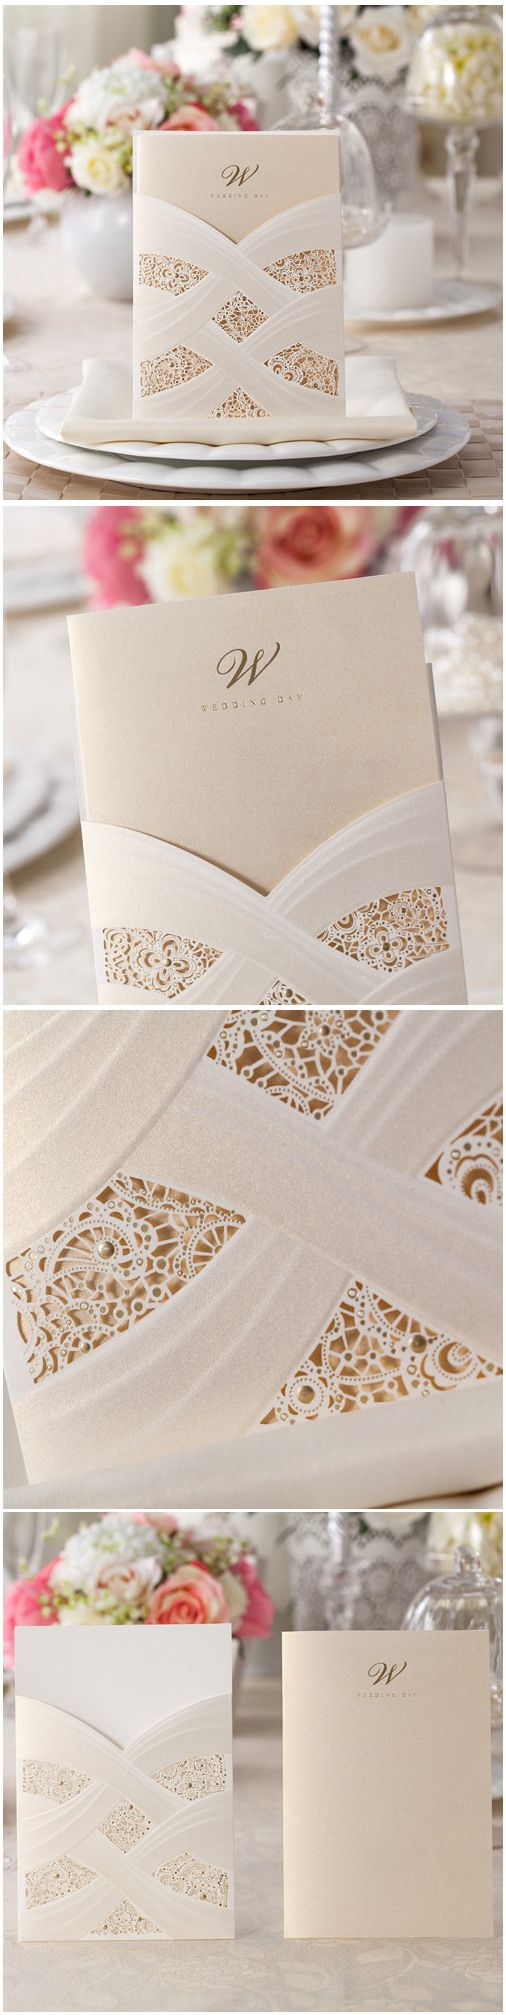 Elegant pearl white ivory pocket laser cut lace wedding invitations. /Aisle Perfect- Lace Invitations Inspiration.